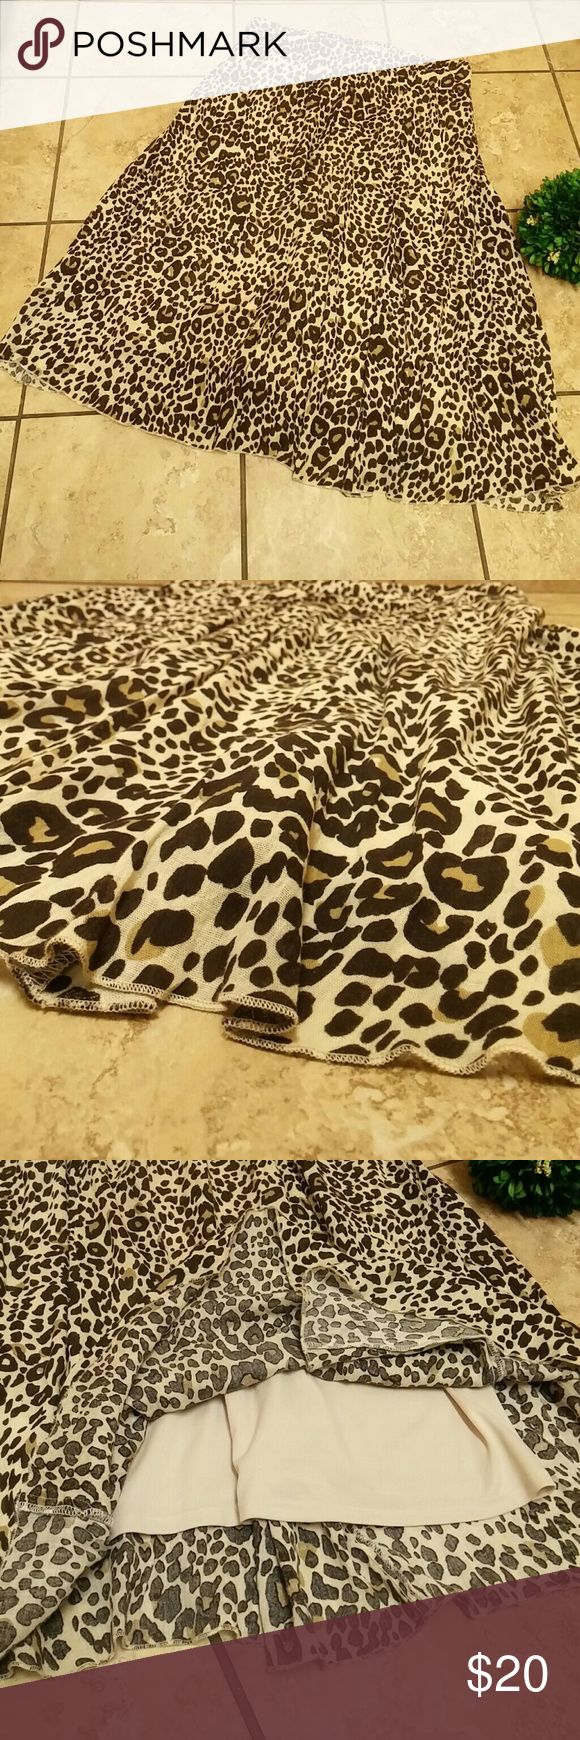 "Cheetah skirt Pretty animal print skirt Nice and flowy material. It is 31.5"" long. Laura Scott Skirts Maxi"